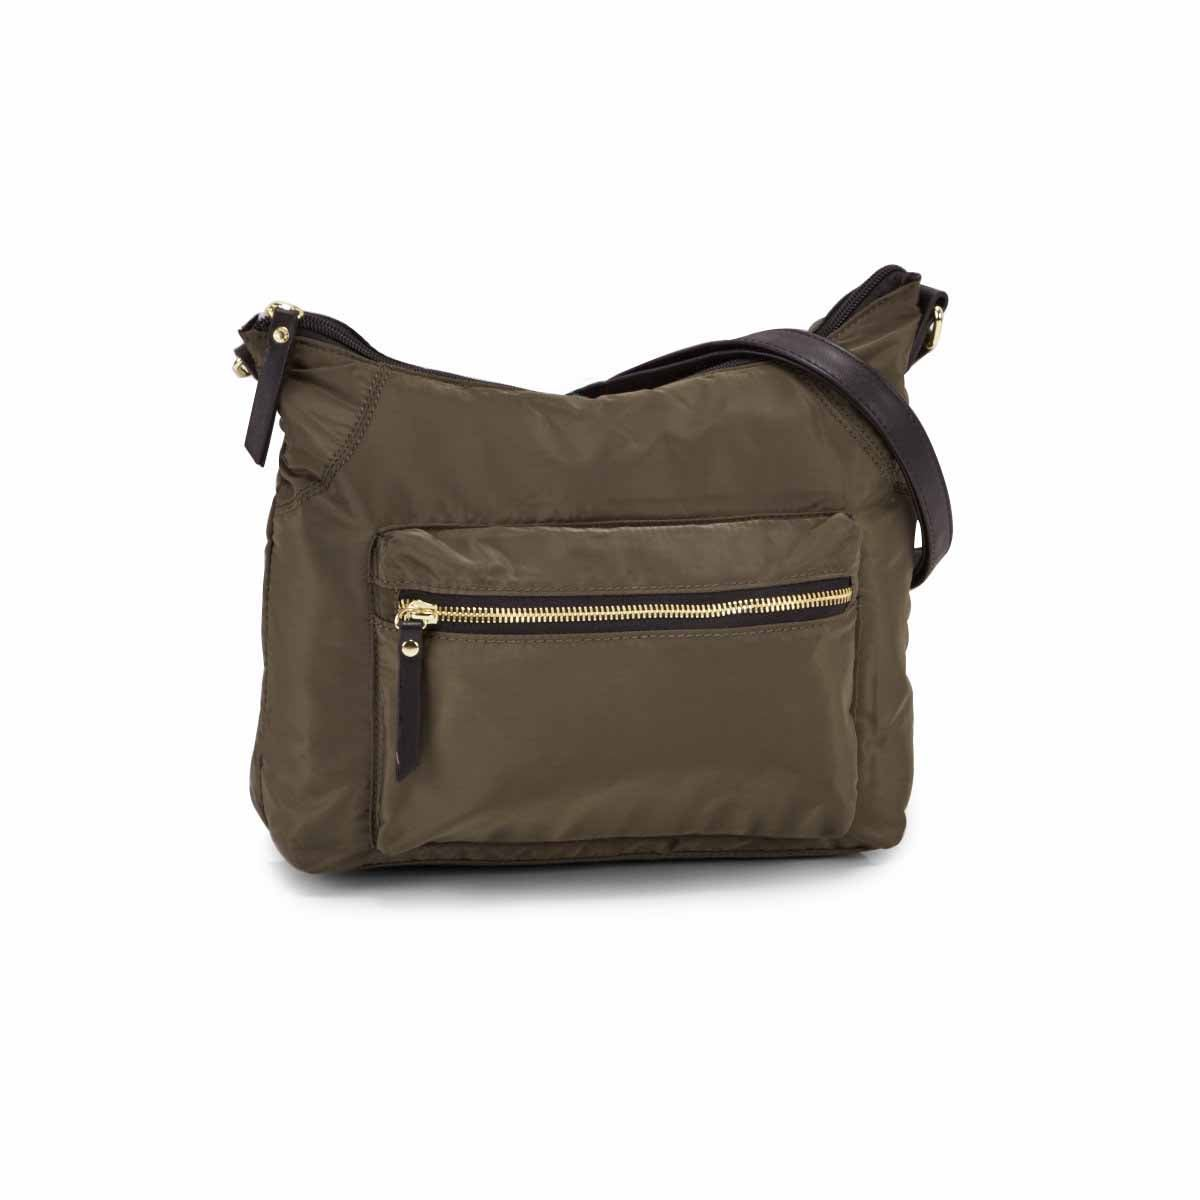 Lds Roots73 khaki top zip hobo bag